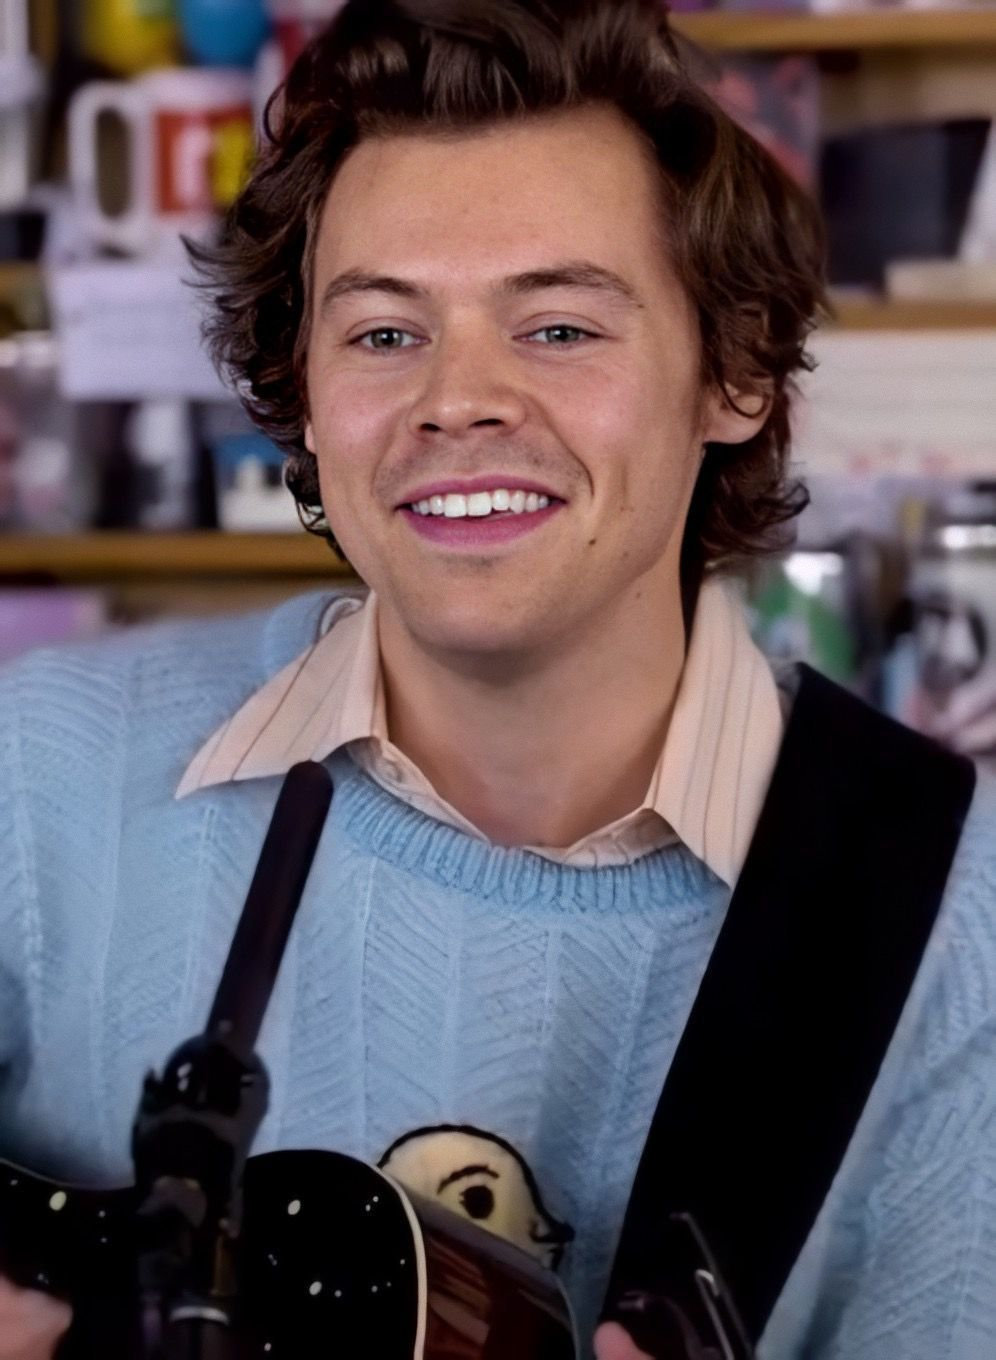 Pin By Alethea Yong On Funny In 2020 Harry Styles Lockscreen Harry Styles Harry Styles Wallpaper